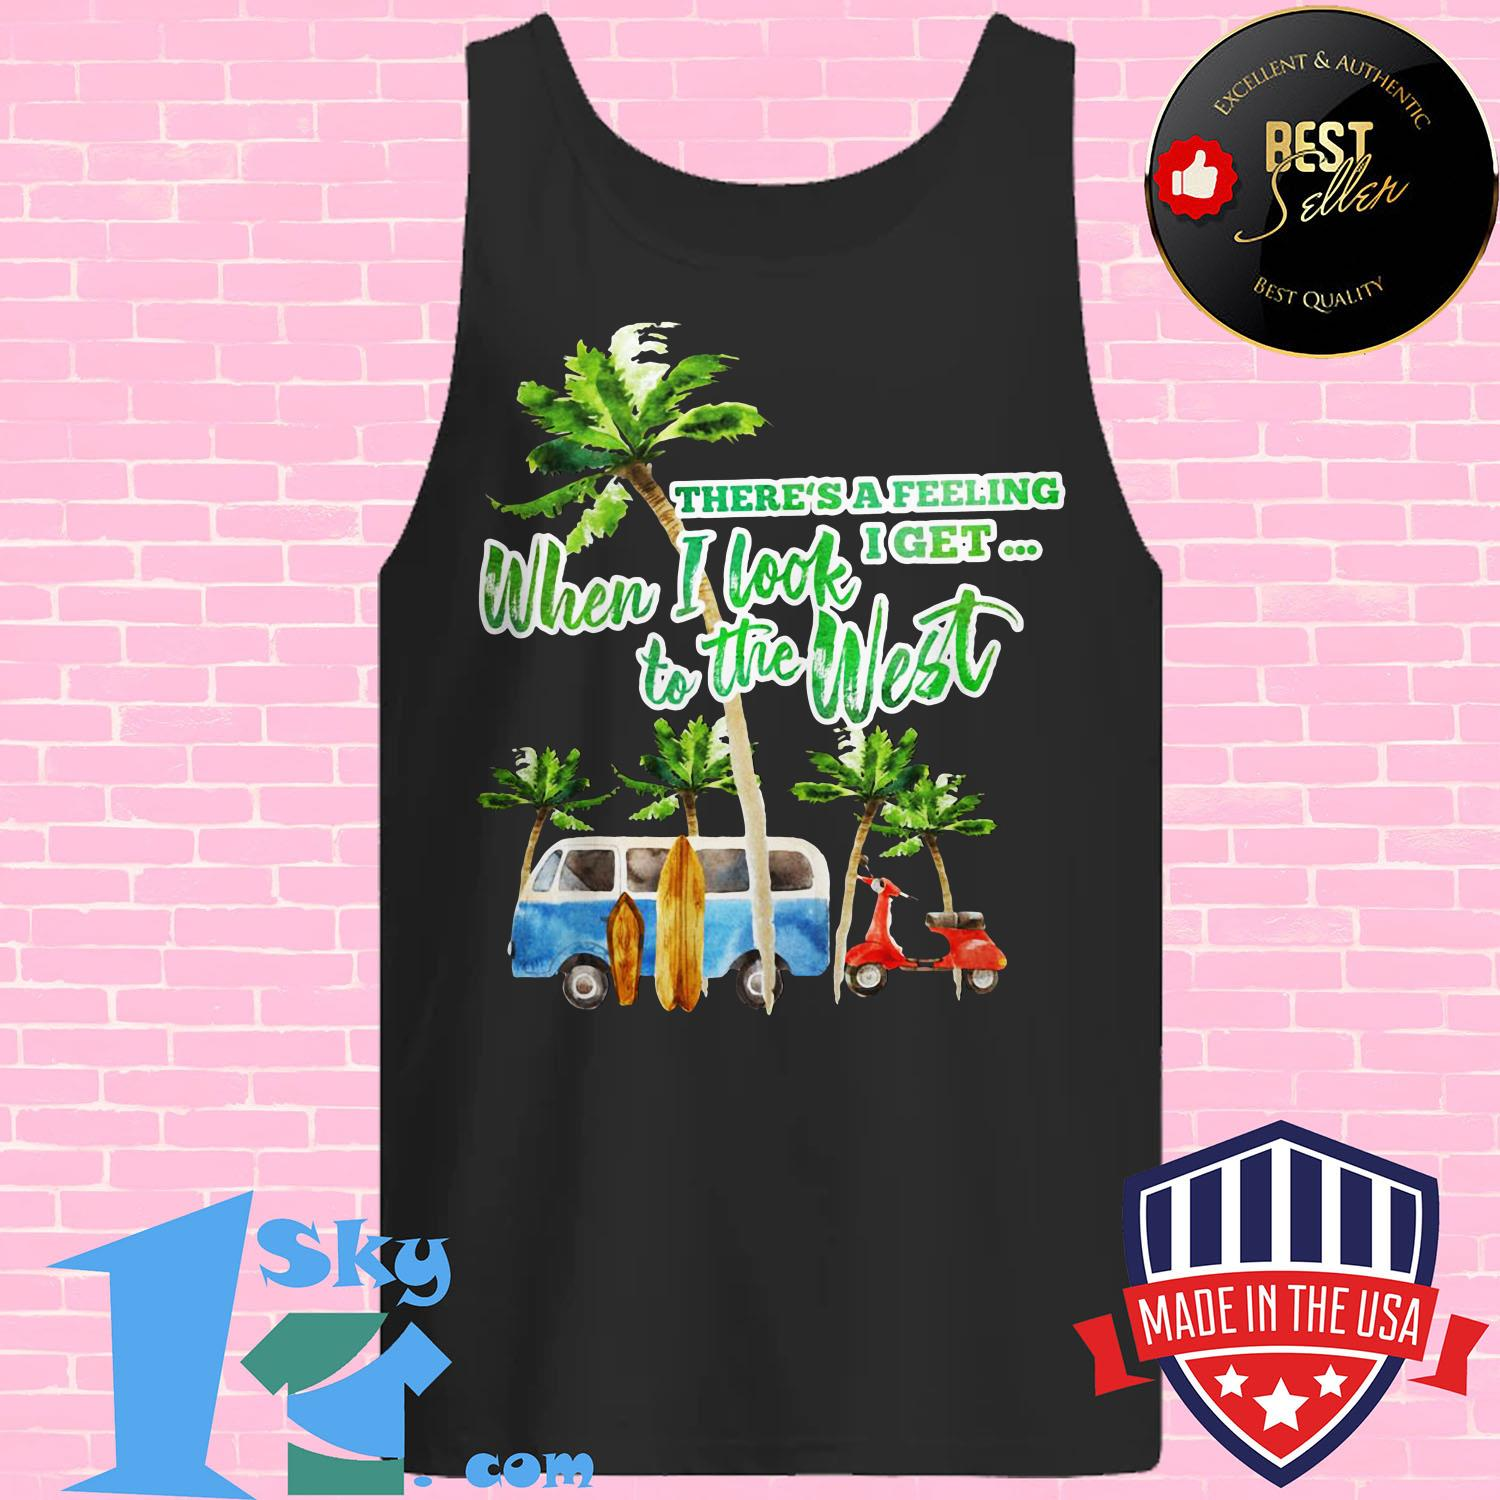 theres a feeling i get when i look to the west coconut tree vintage tank top - There's a feeling I get when I look to the West Coconut tree Vintage shirt